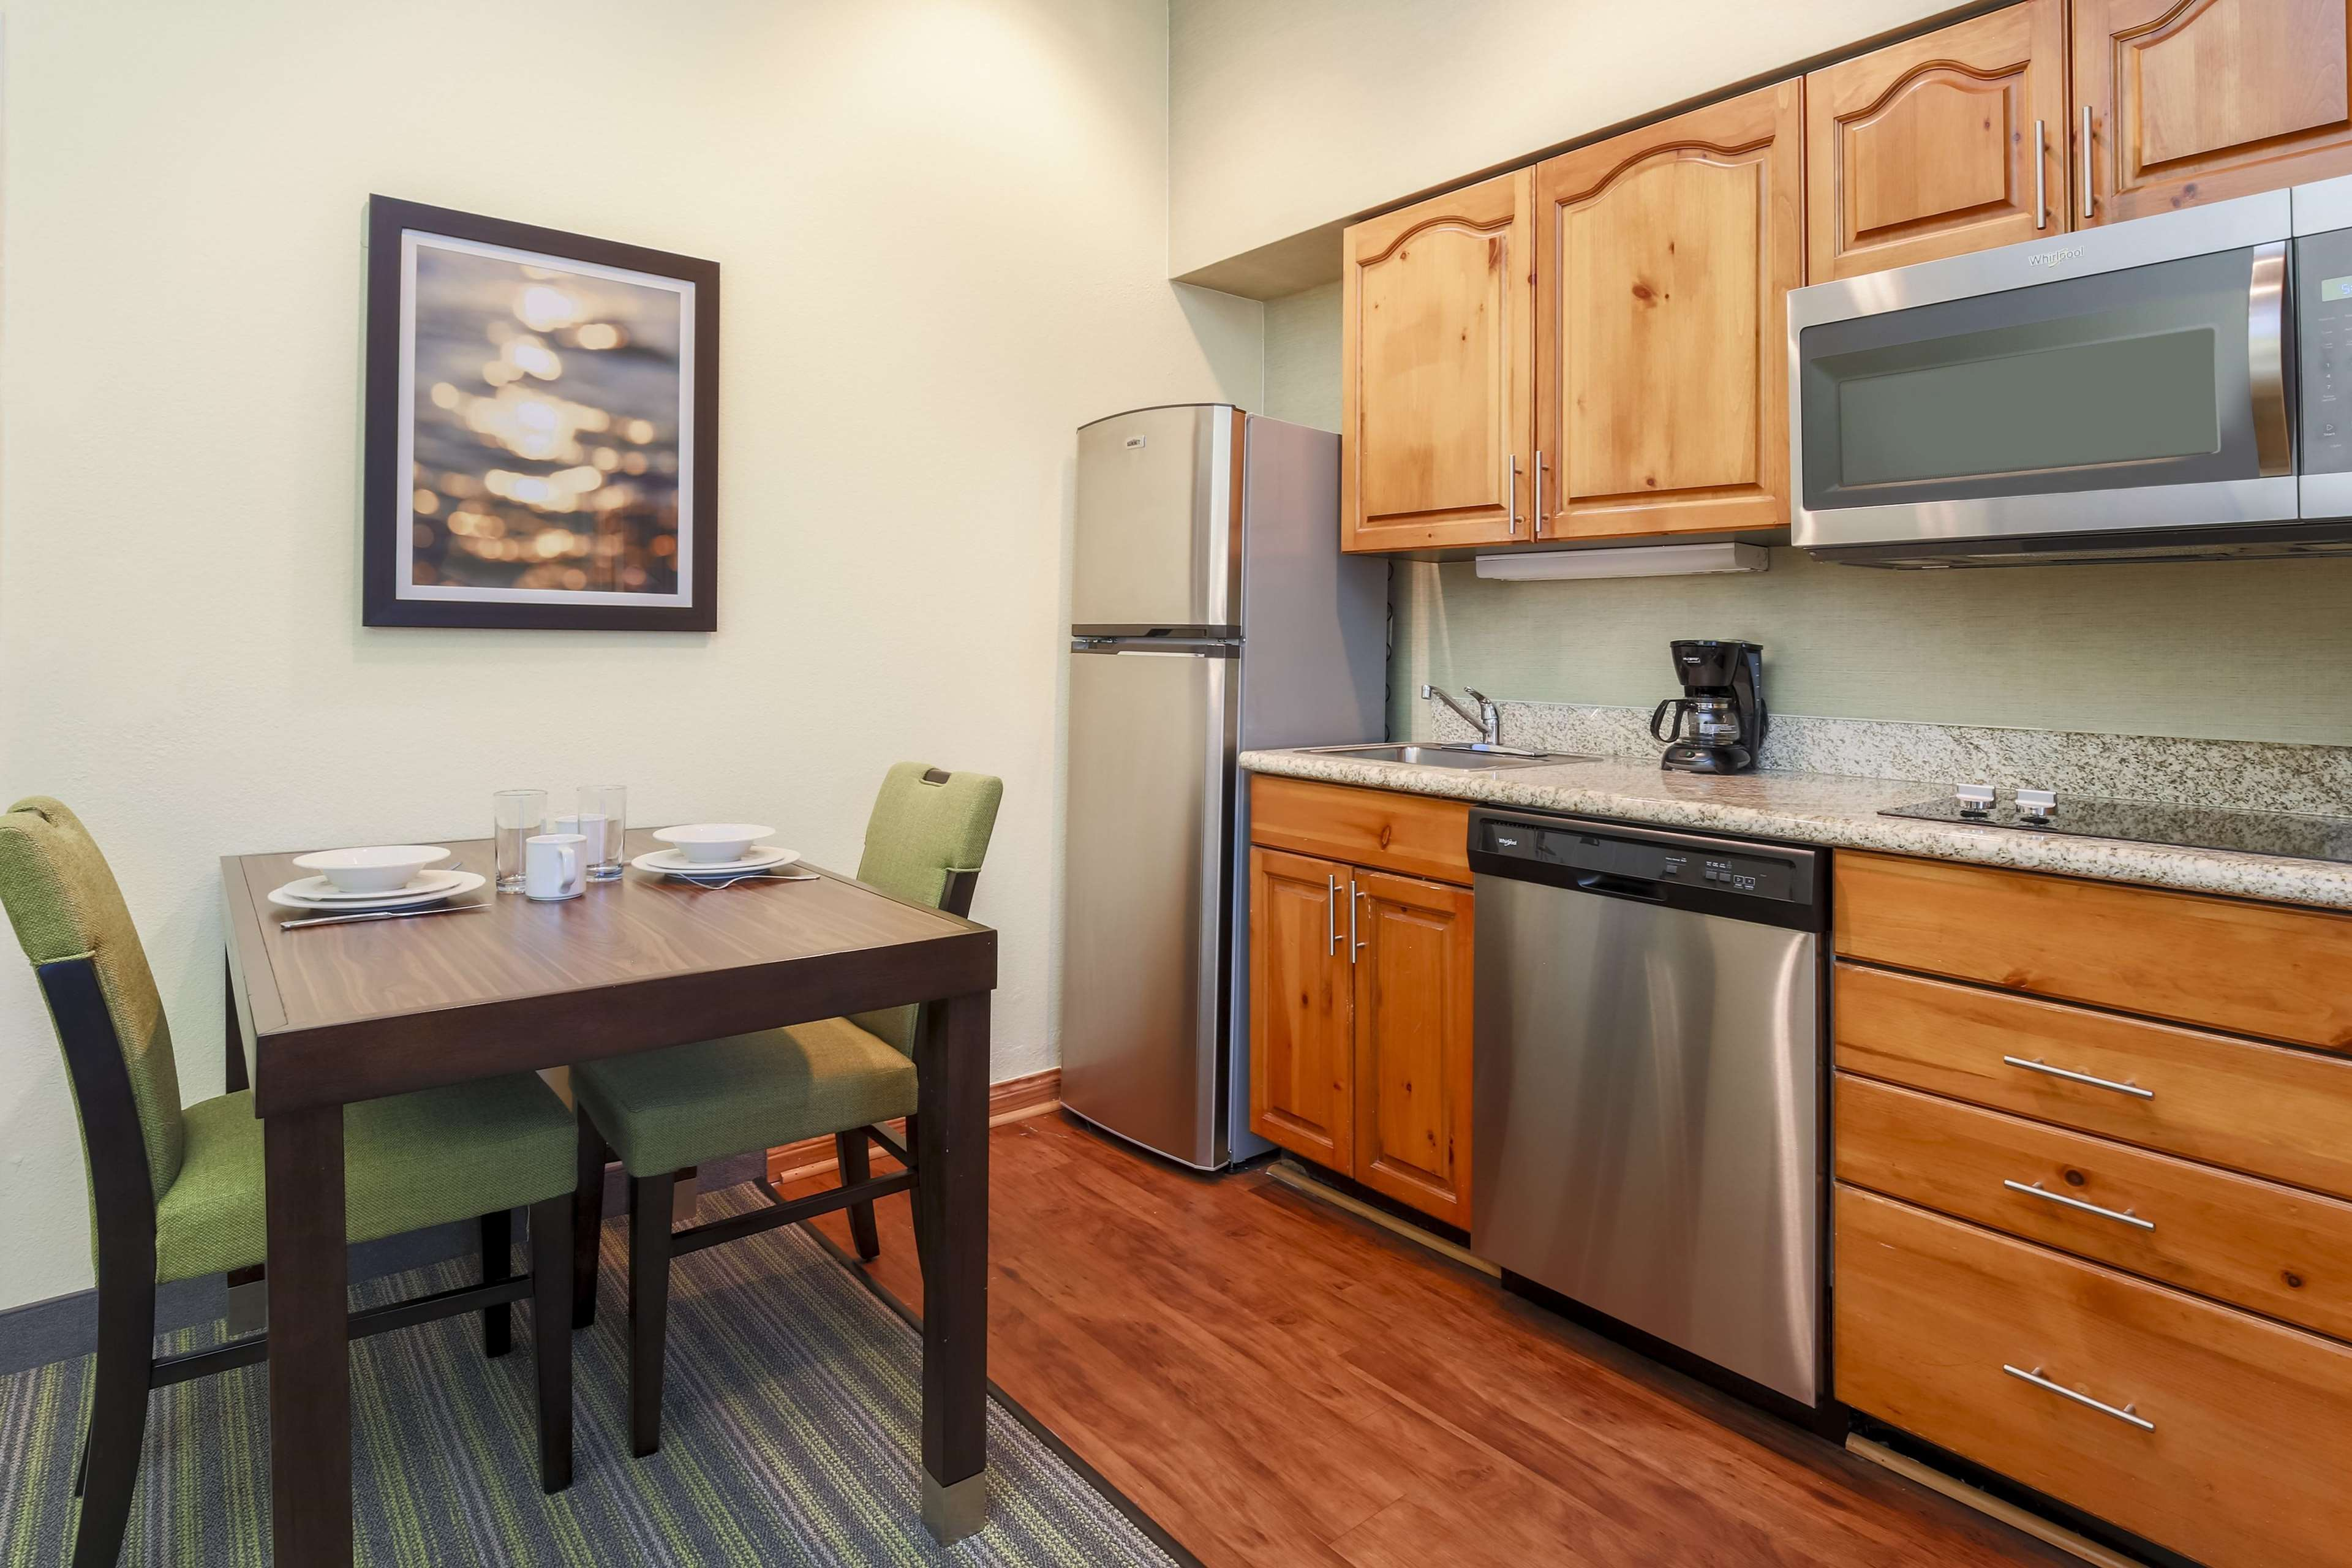 Homewood Suites by Hilton St. Petersburg Clearwater image 21